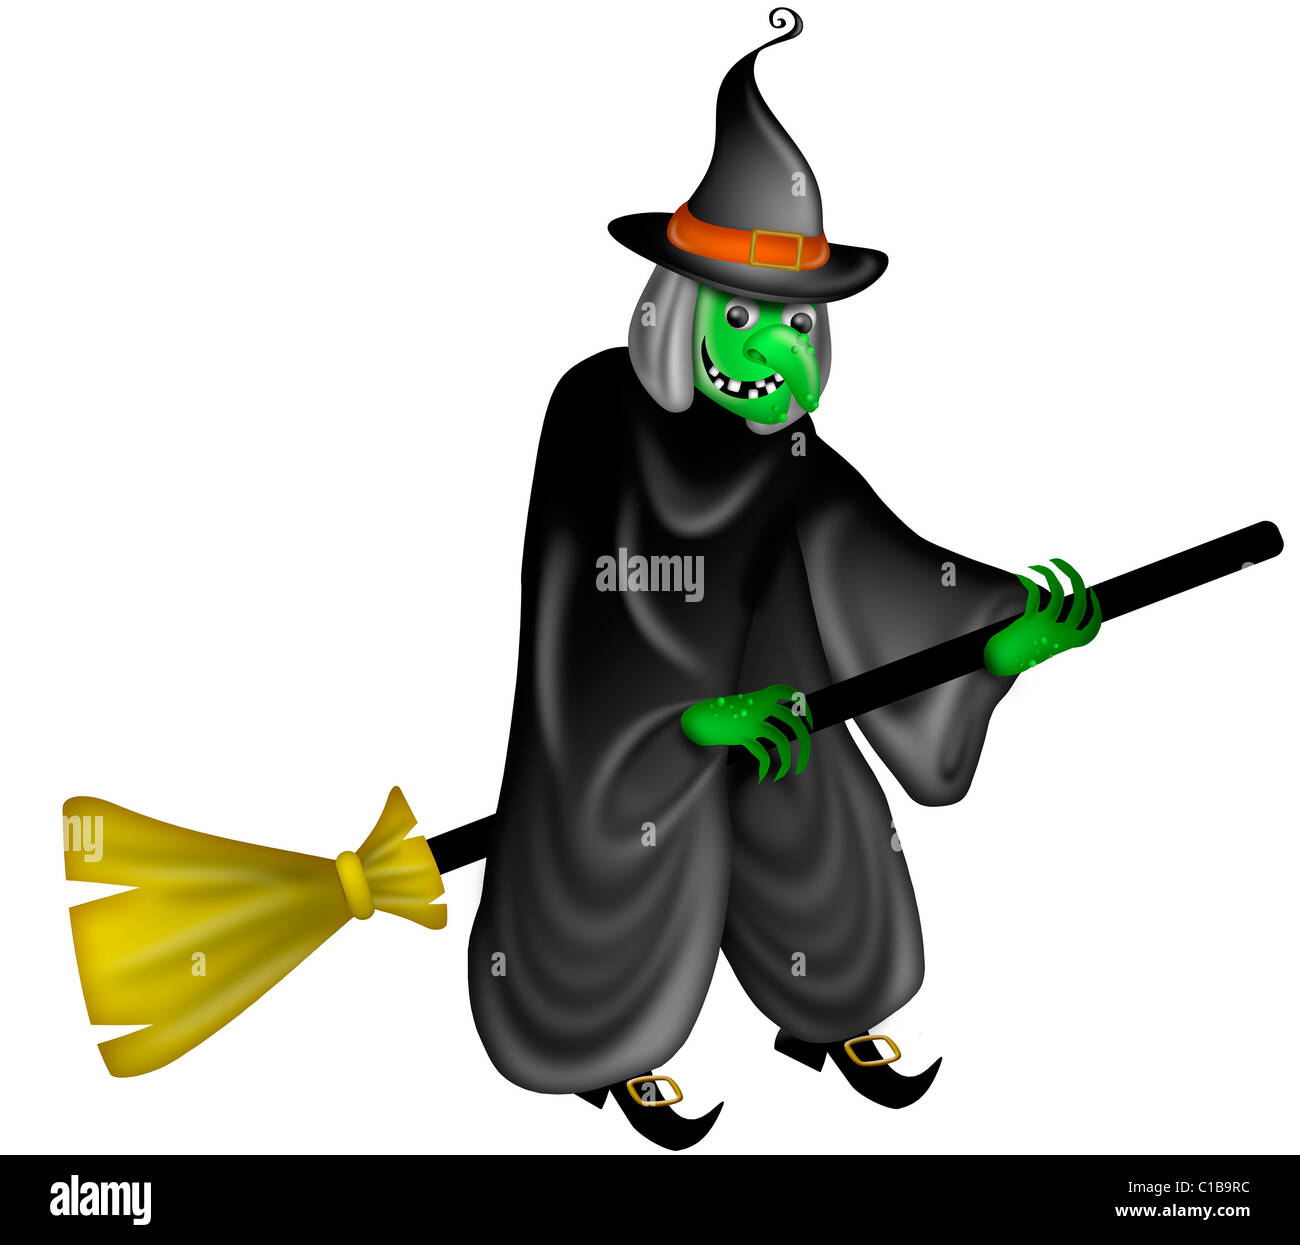 Halloween-Hexe fliegen auf Besen Stock Illustration Stockbild